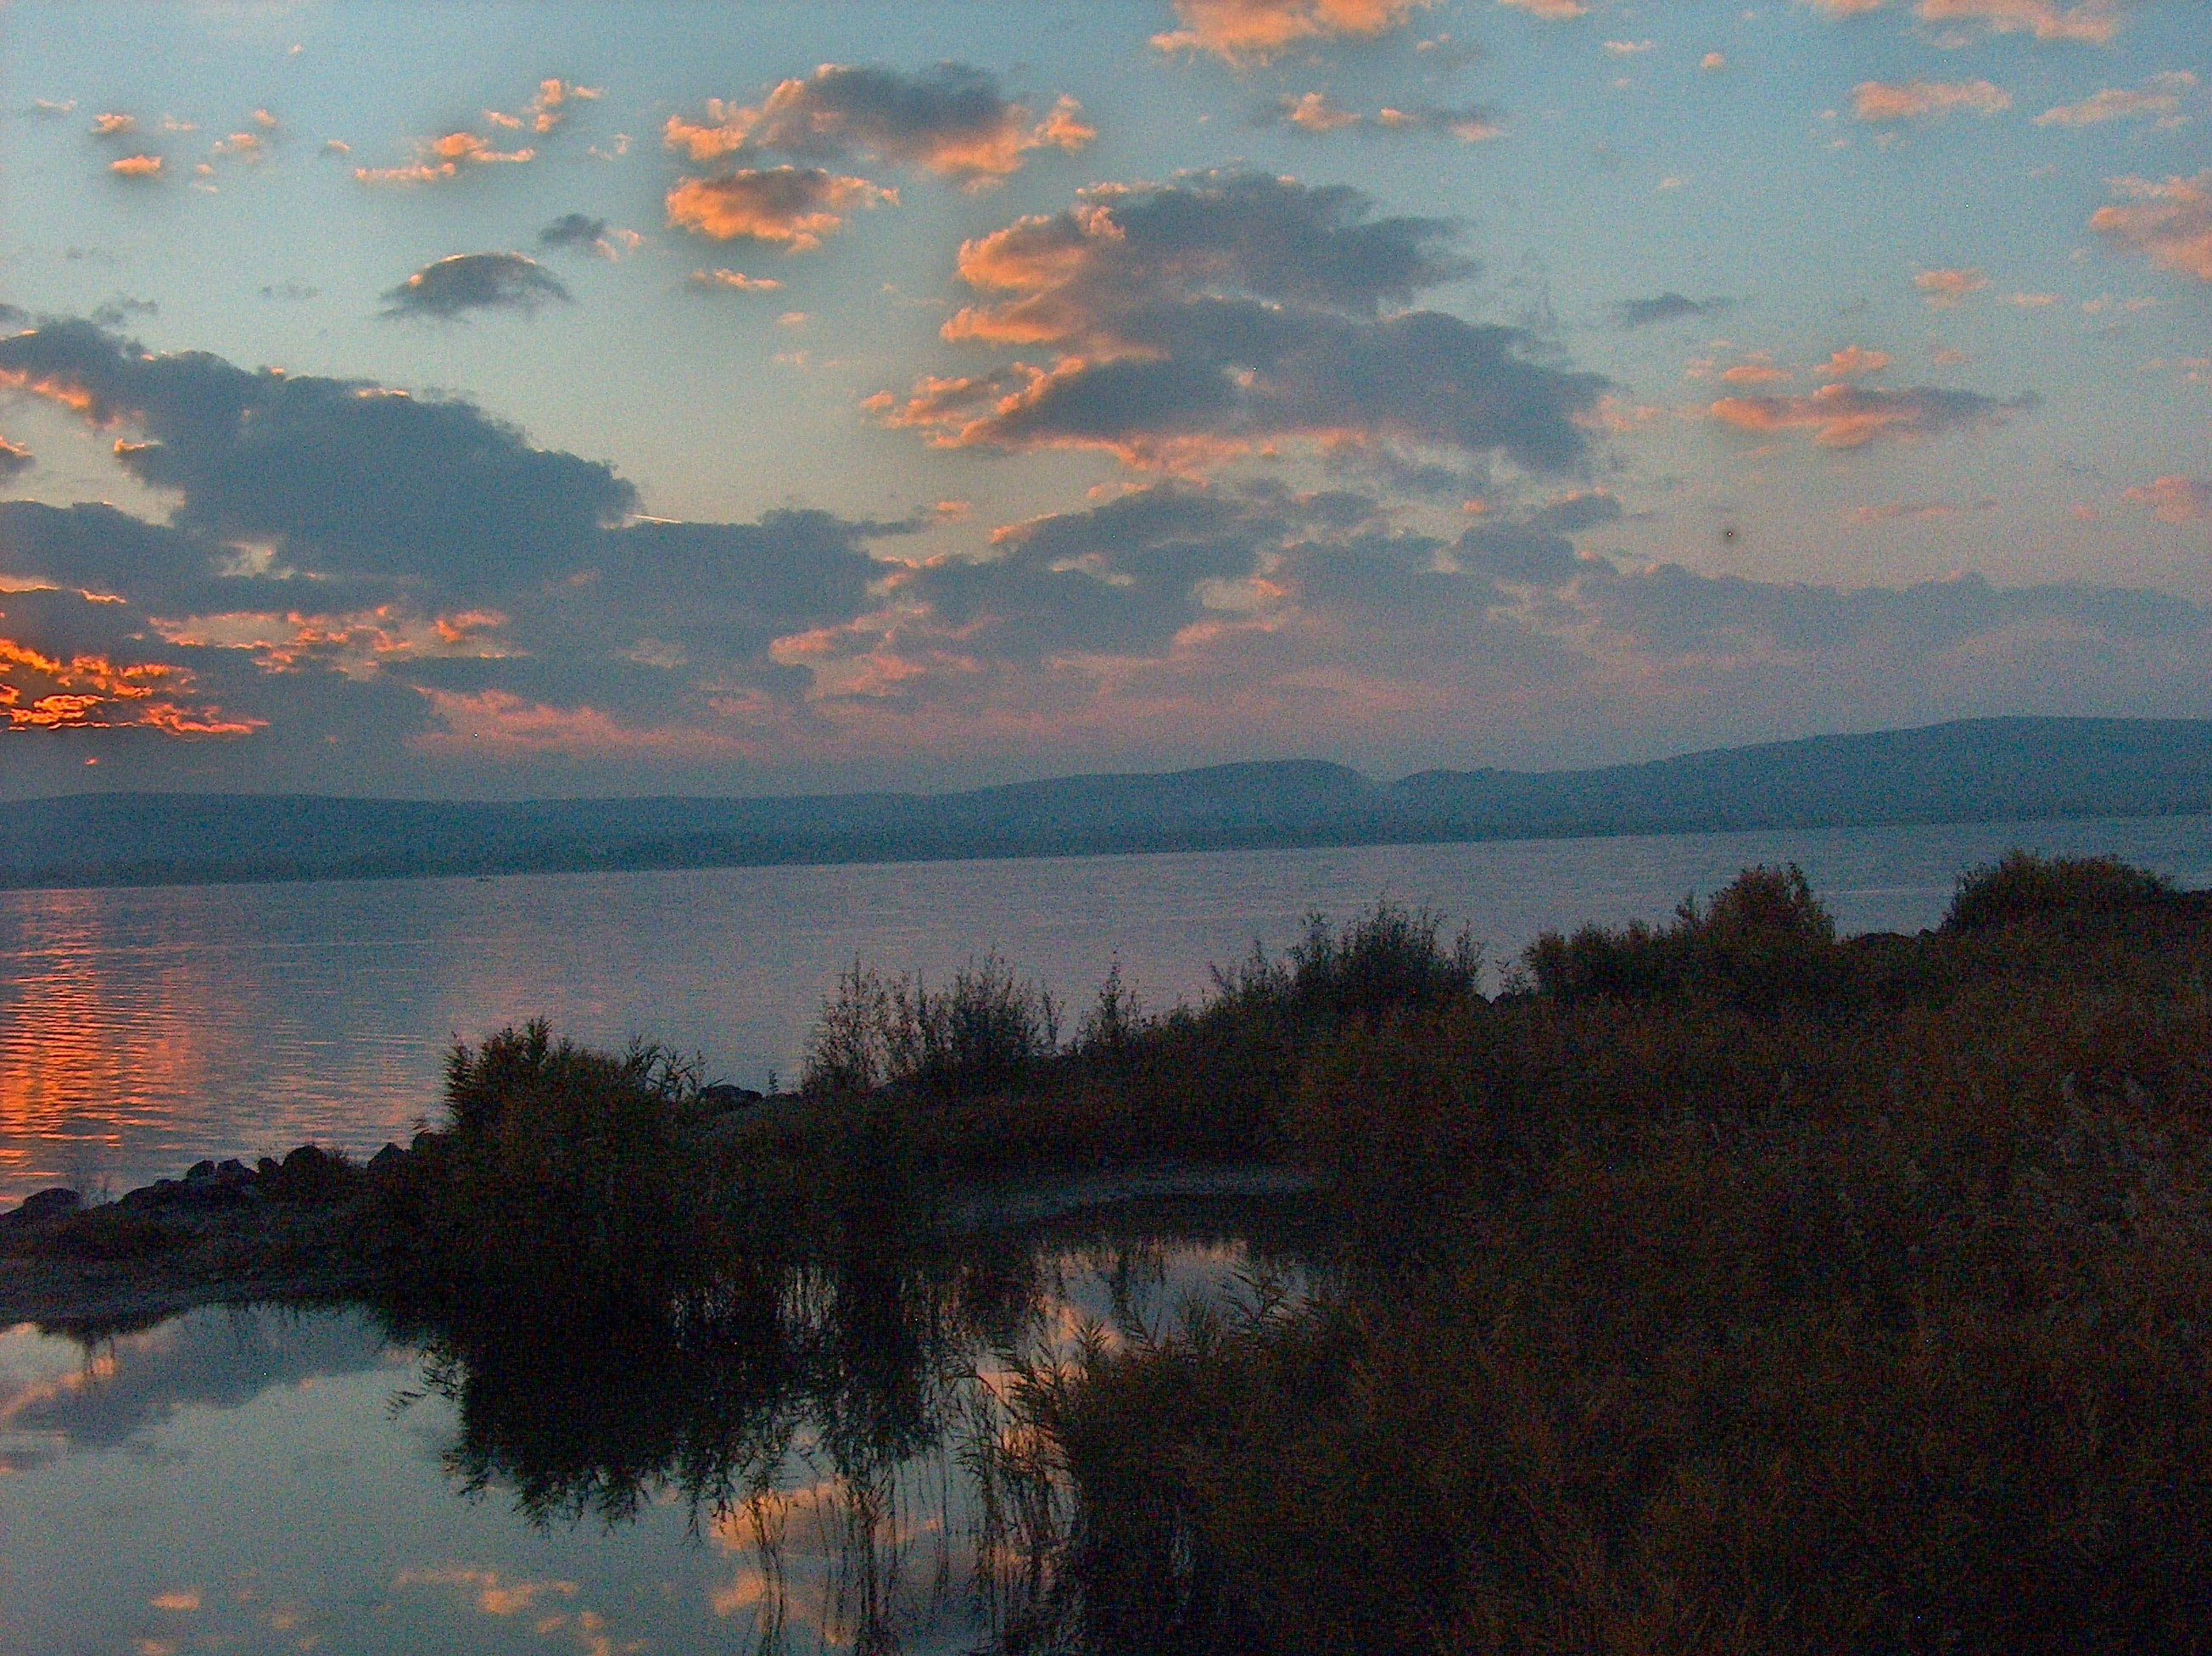 sunset clouds hungary Lake Balaton HD Wallpaper